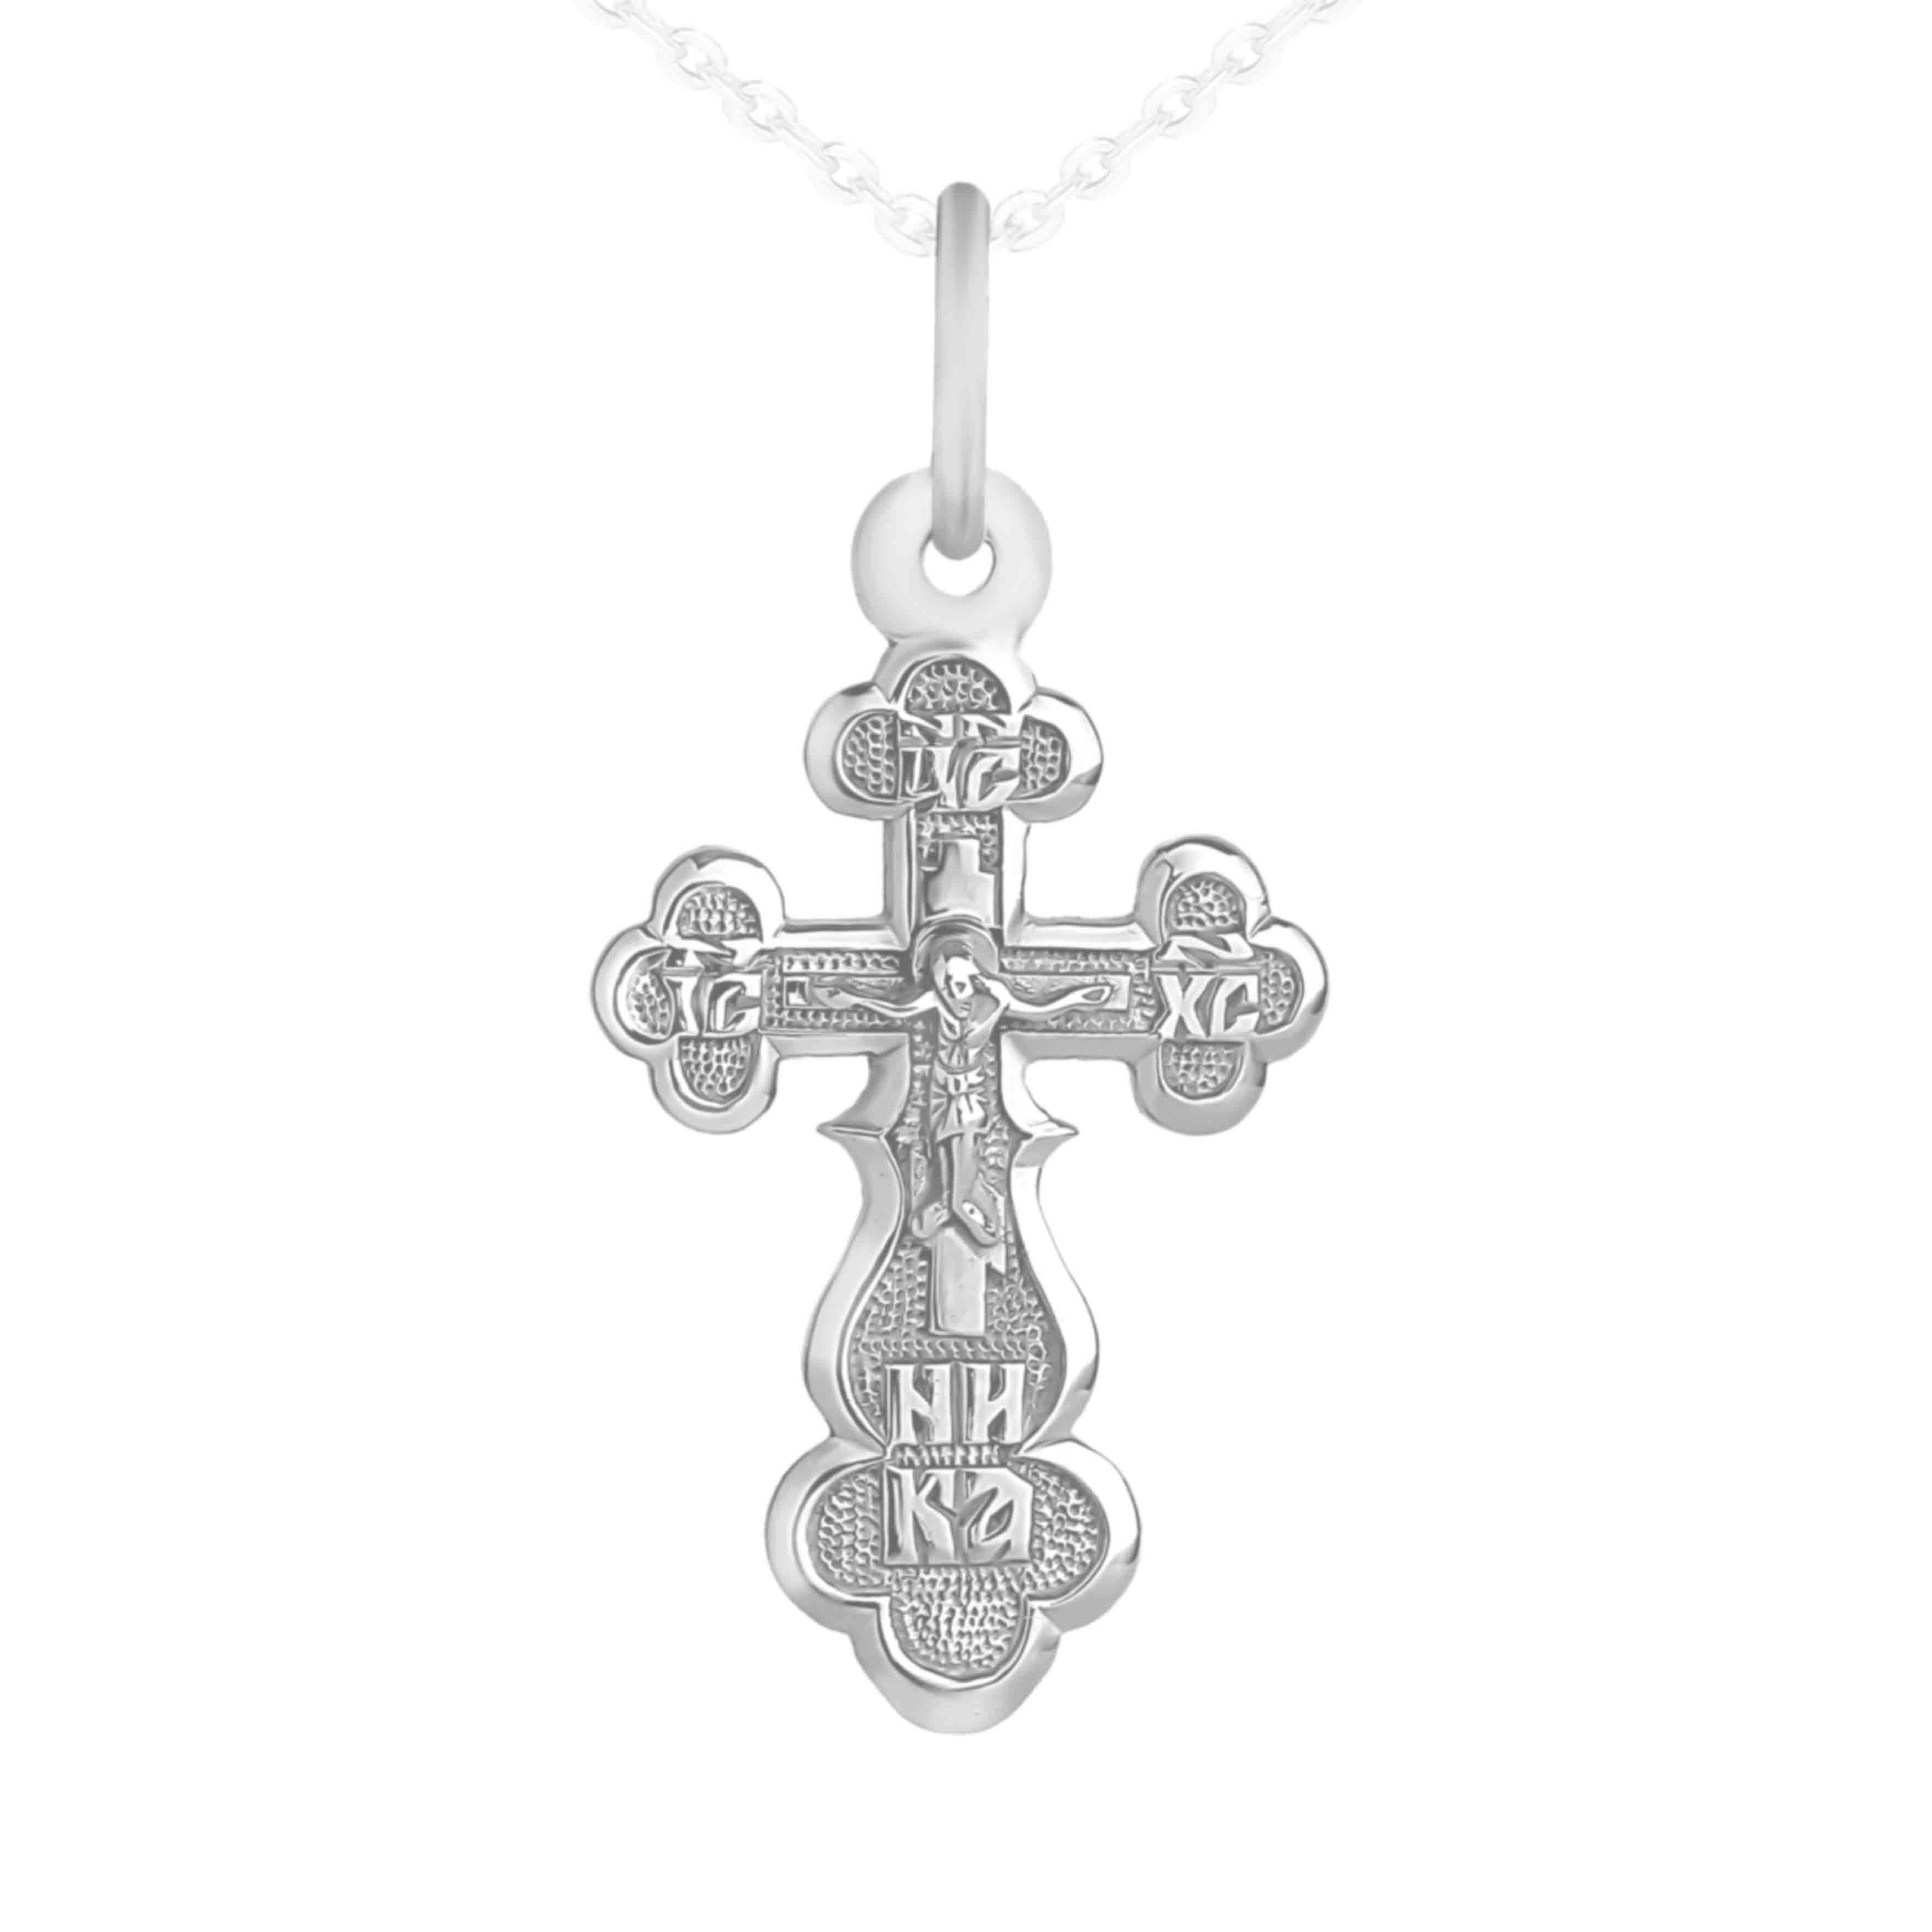 Trefoil Orthodox Cross Pendant